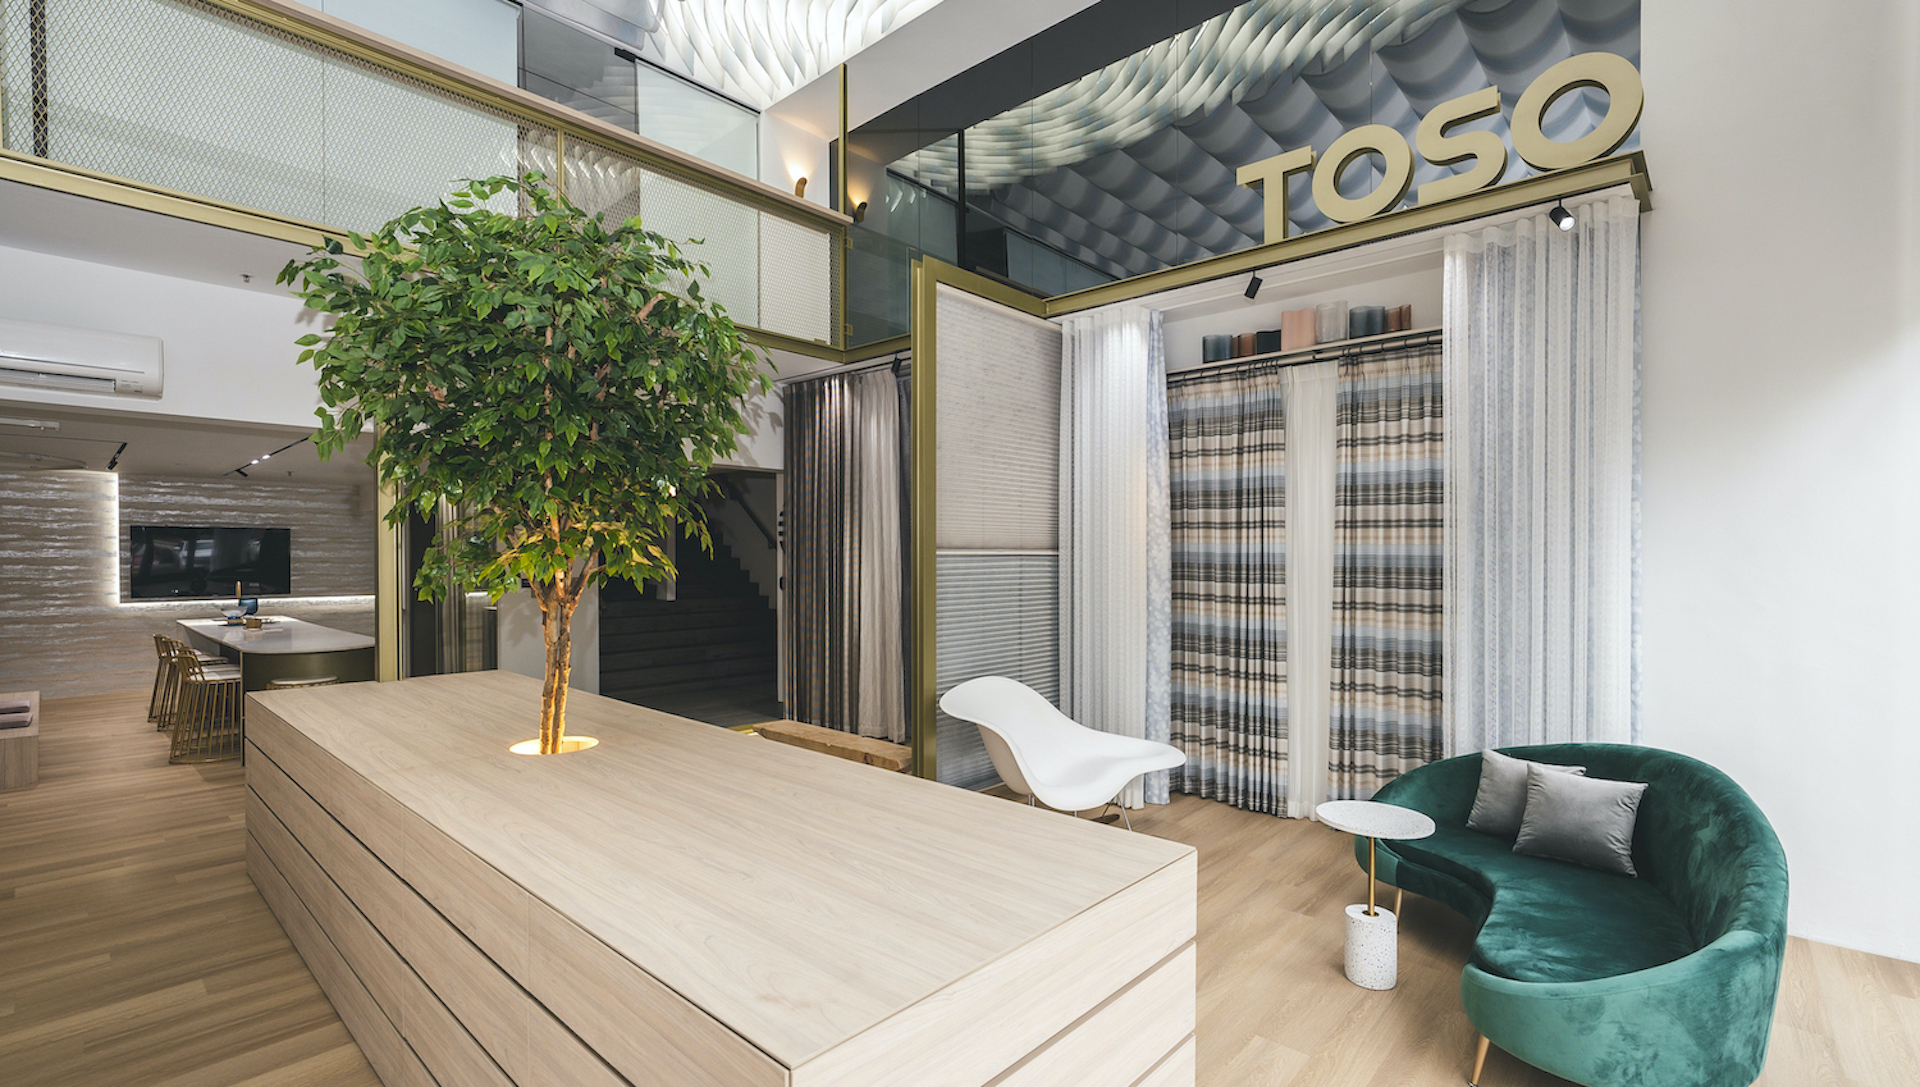 Toso Gallery by mc.2